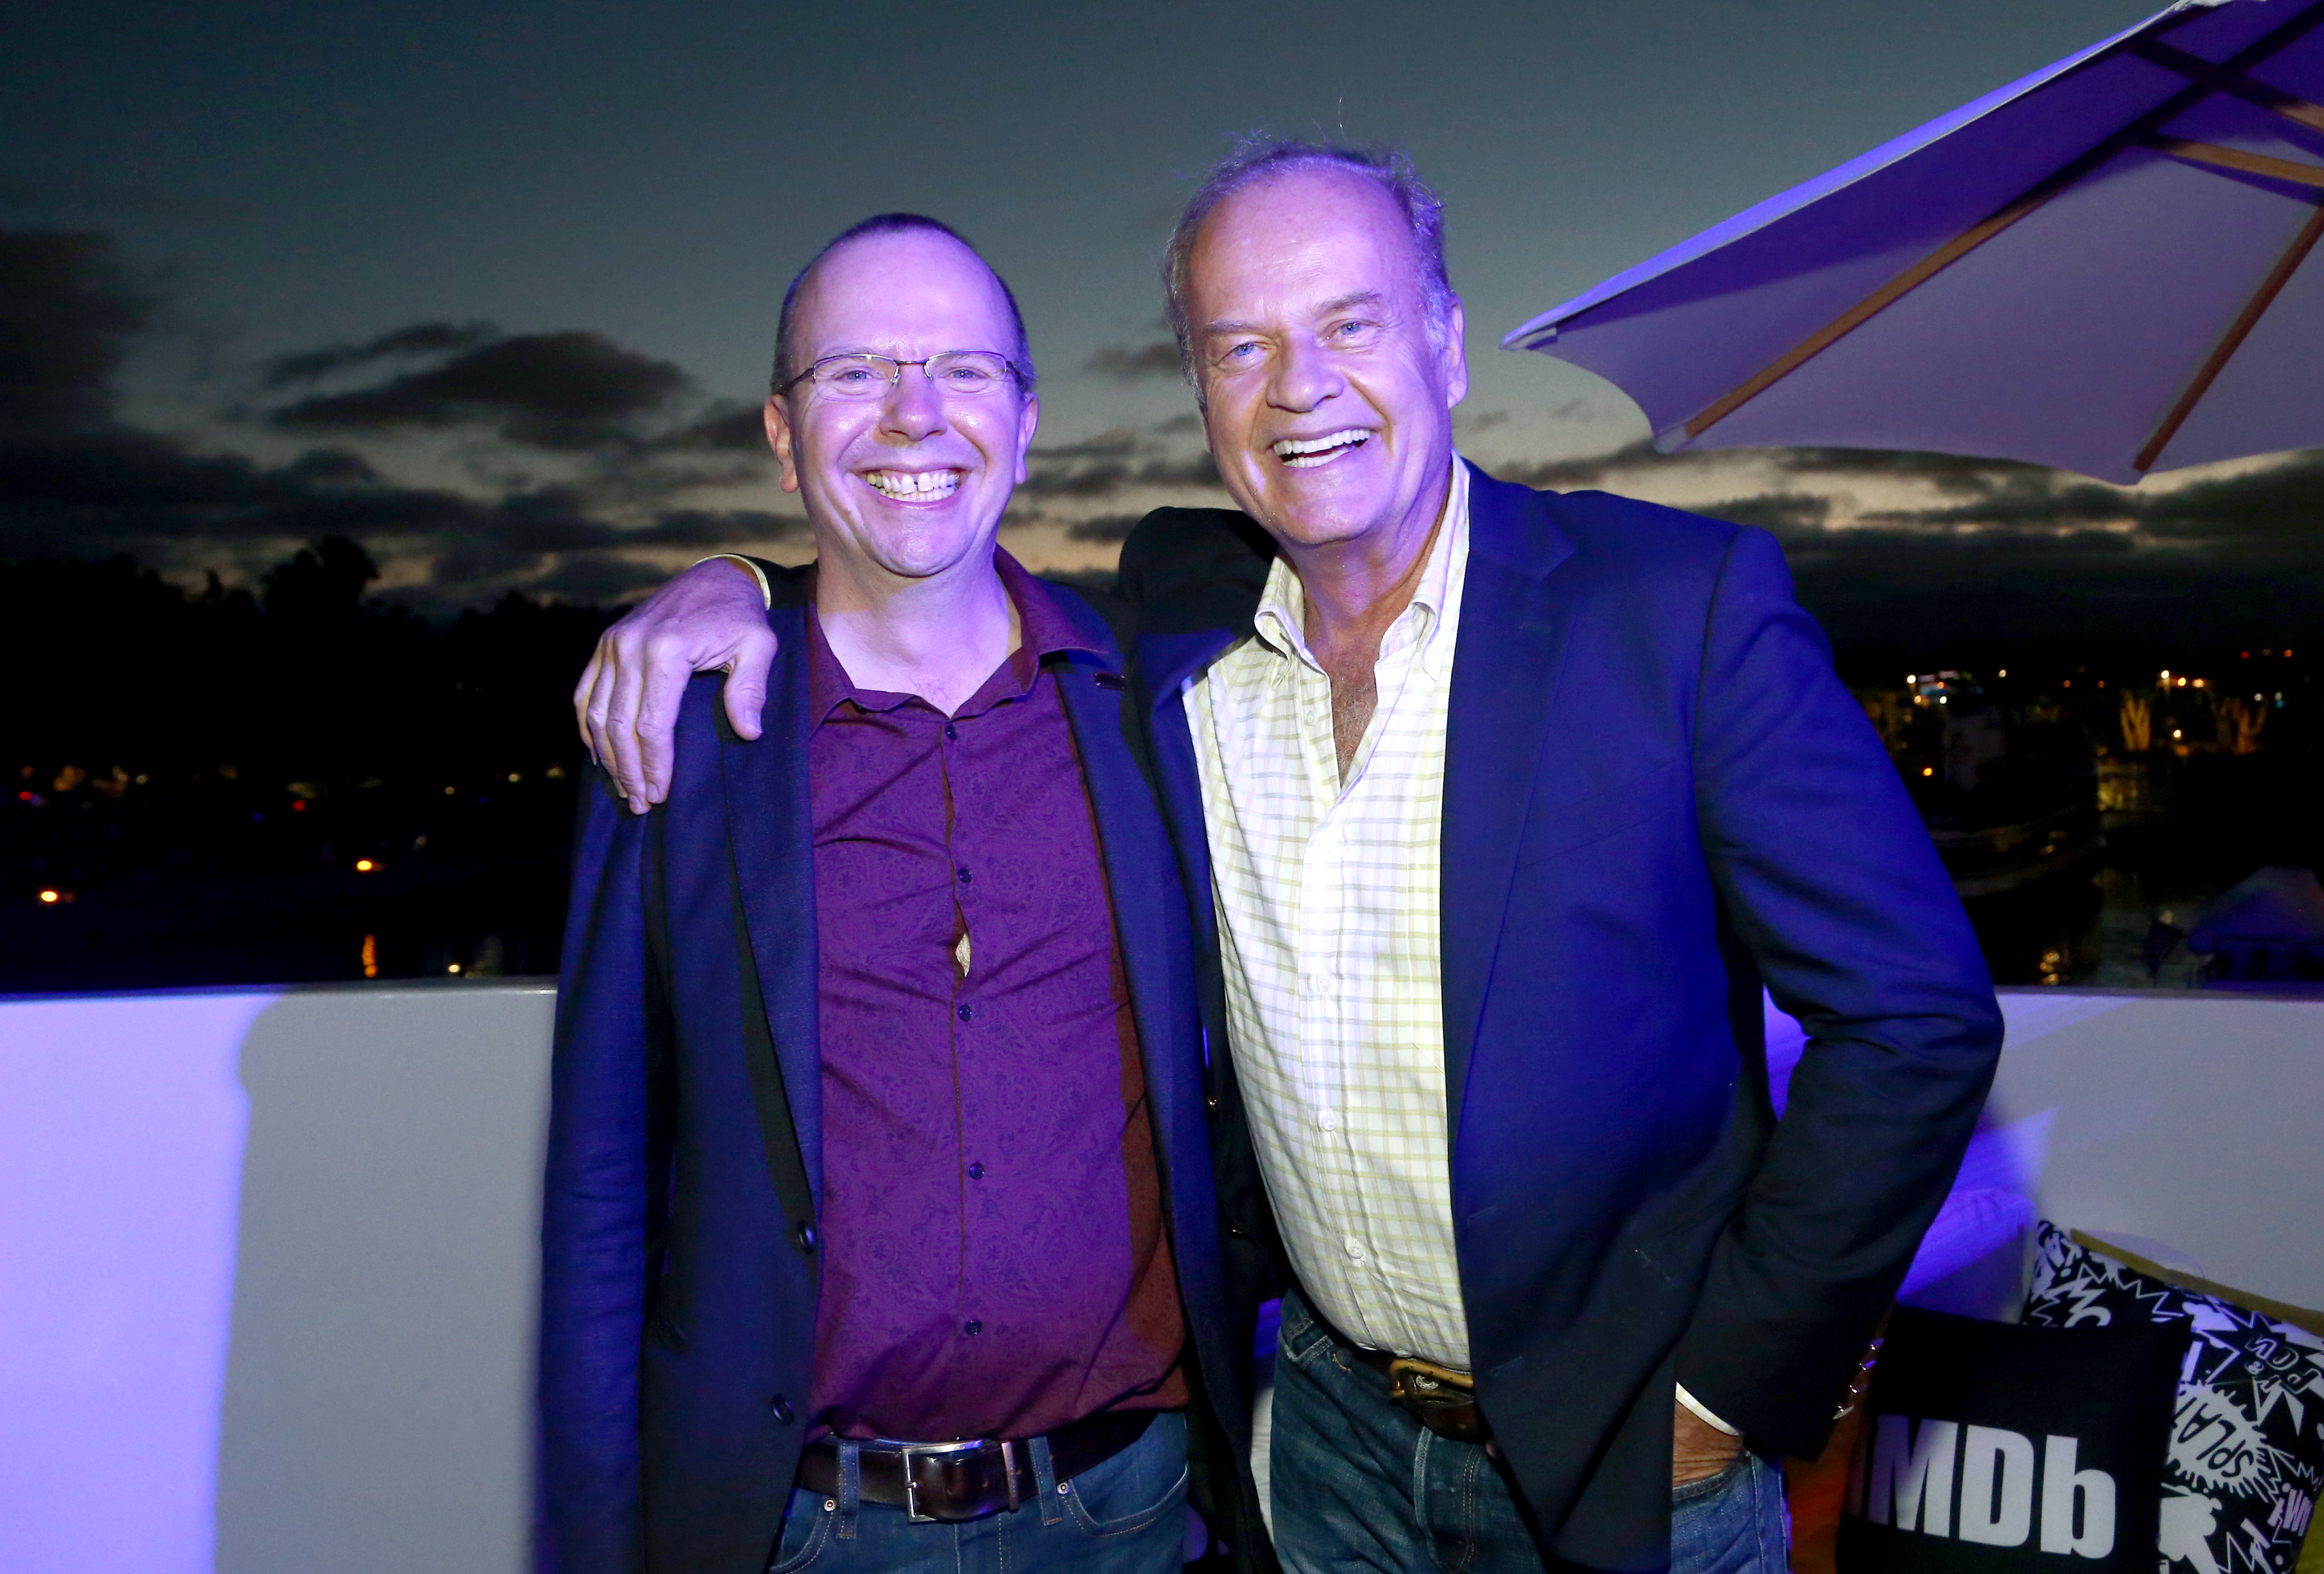 Kelsey Grammer and Col Needham at an event for IMDb at San Diego Comic-Con (2016)